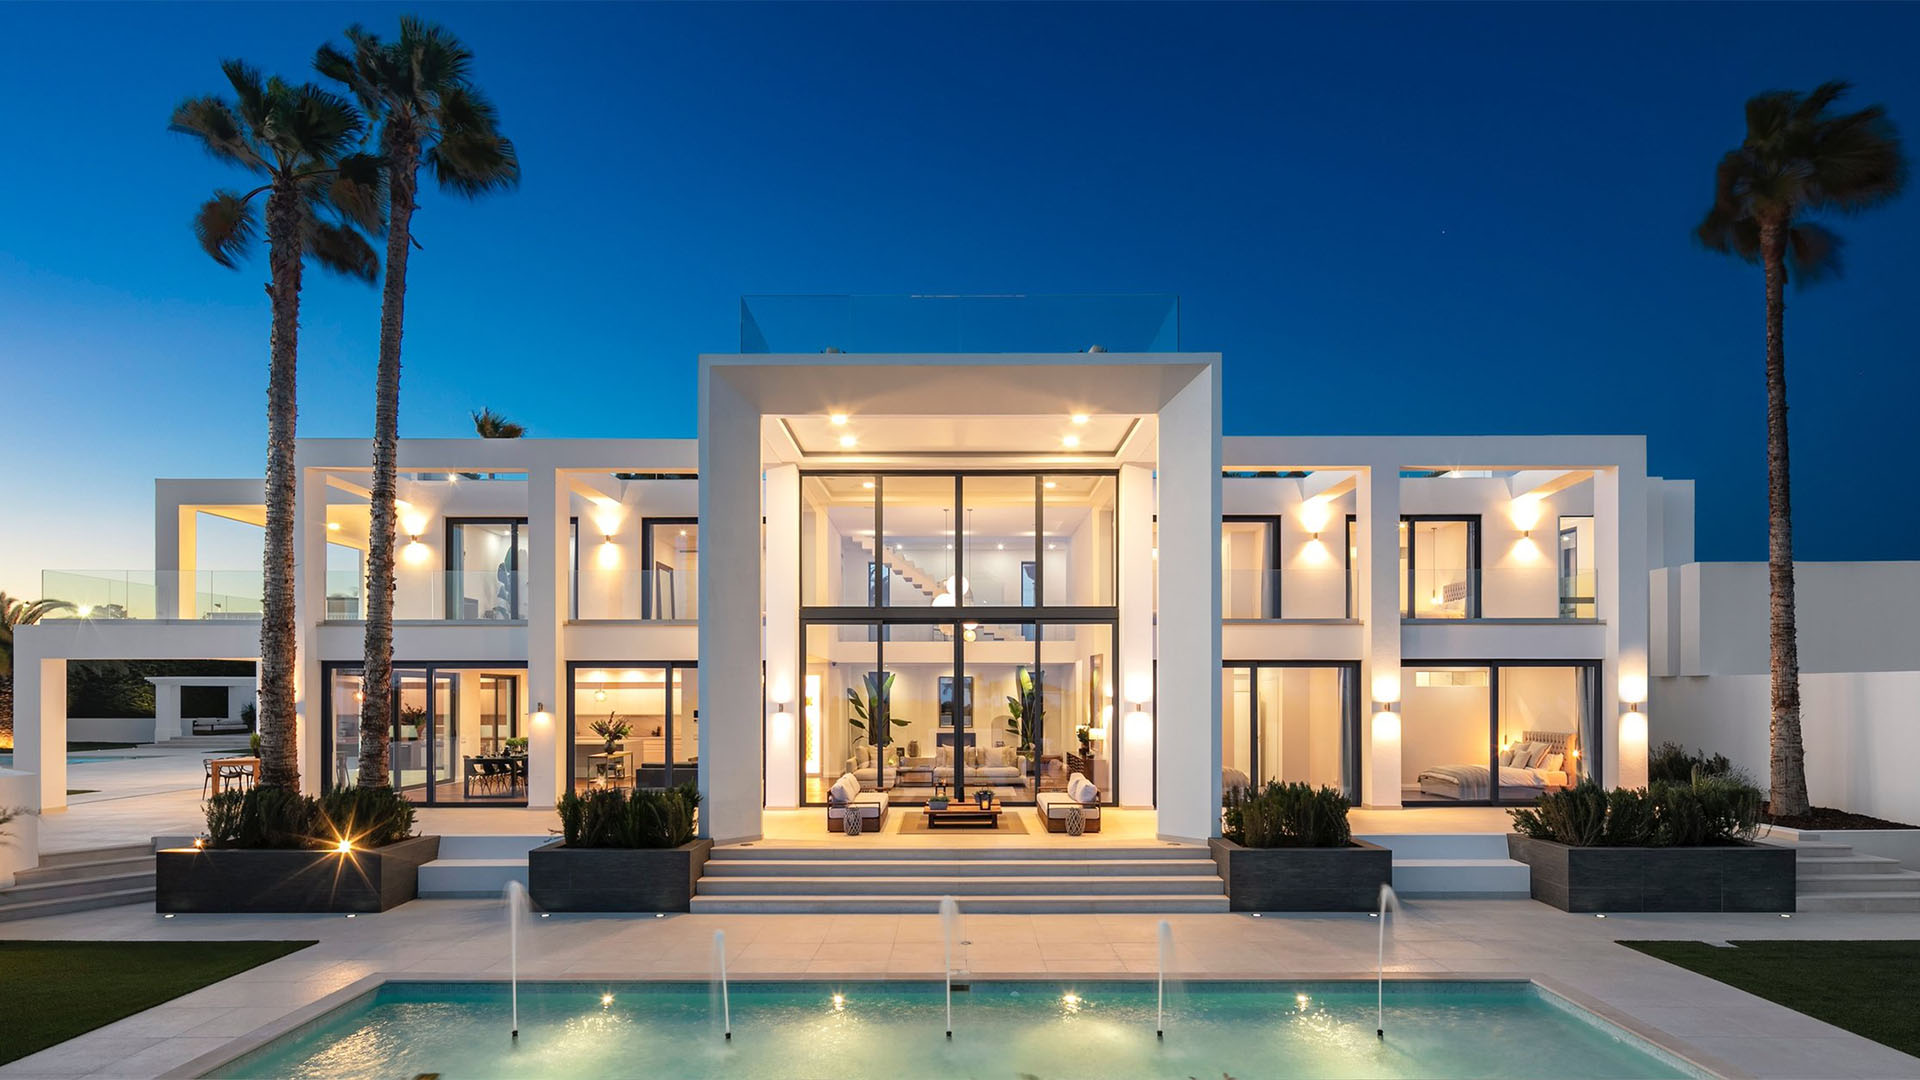 Architectual masterpiece, a world class project completed in 2019